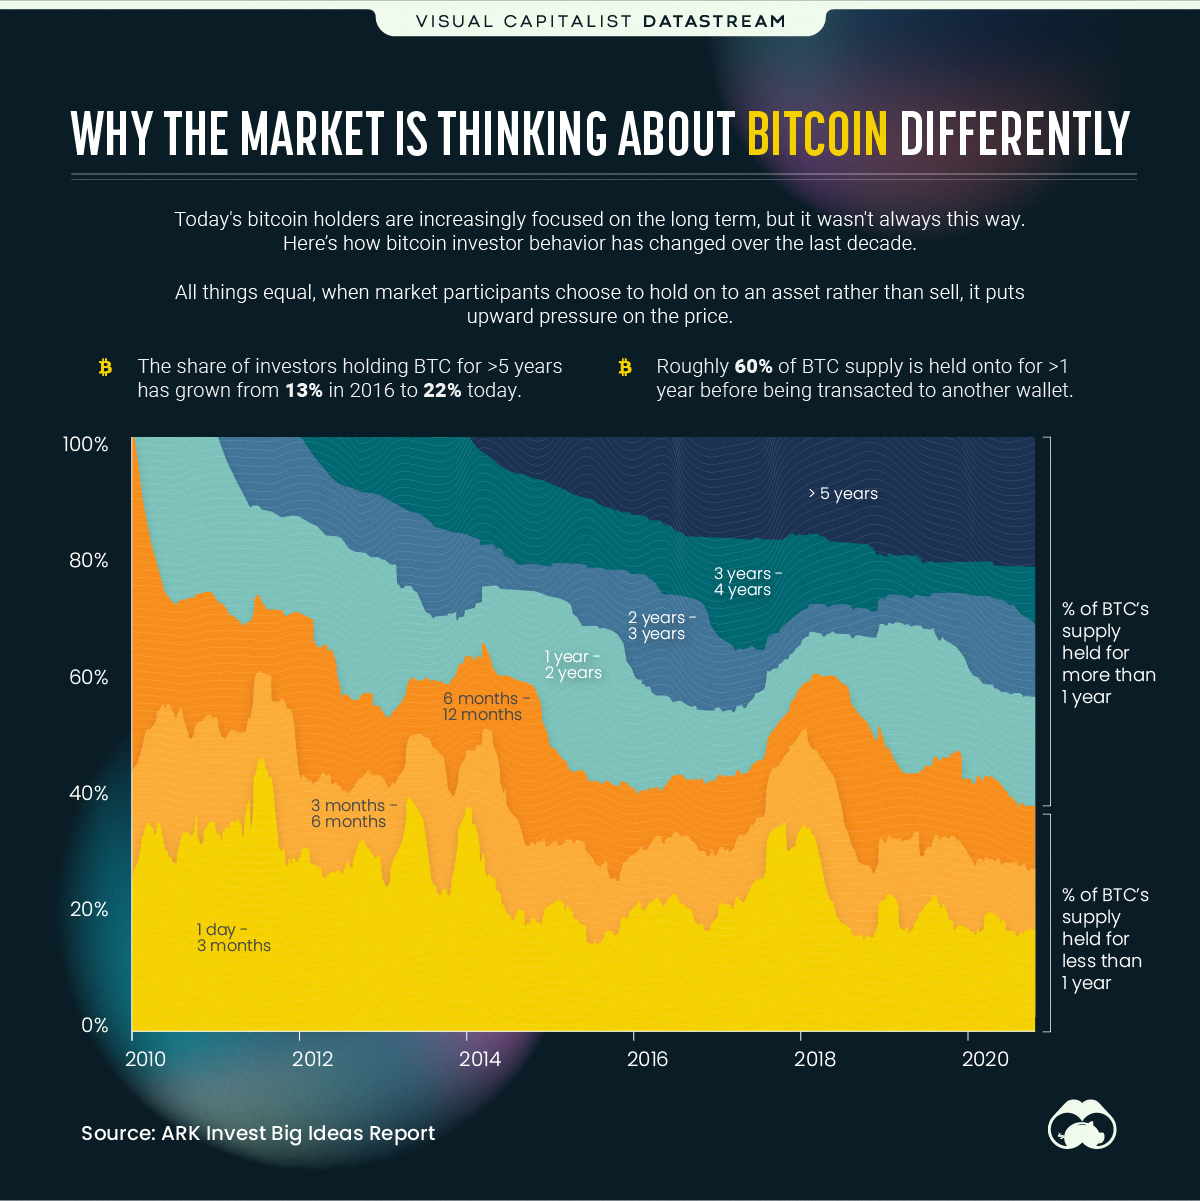 why the market is thinking differently about Bitcoin